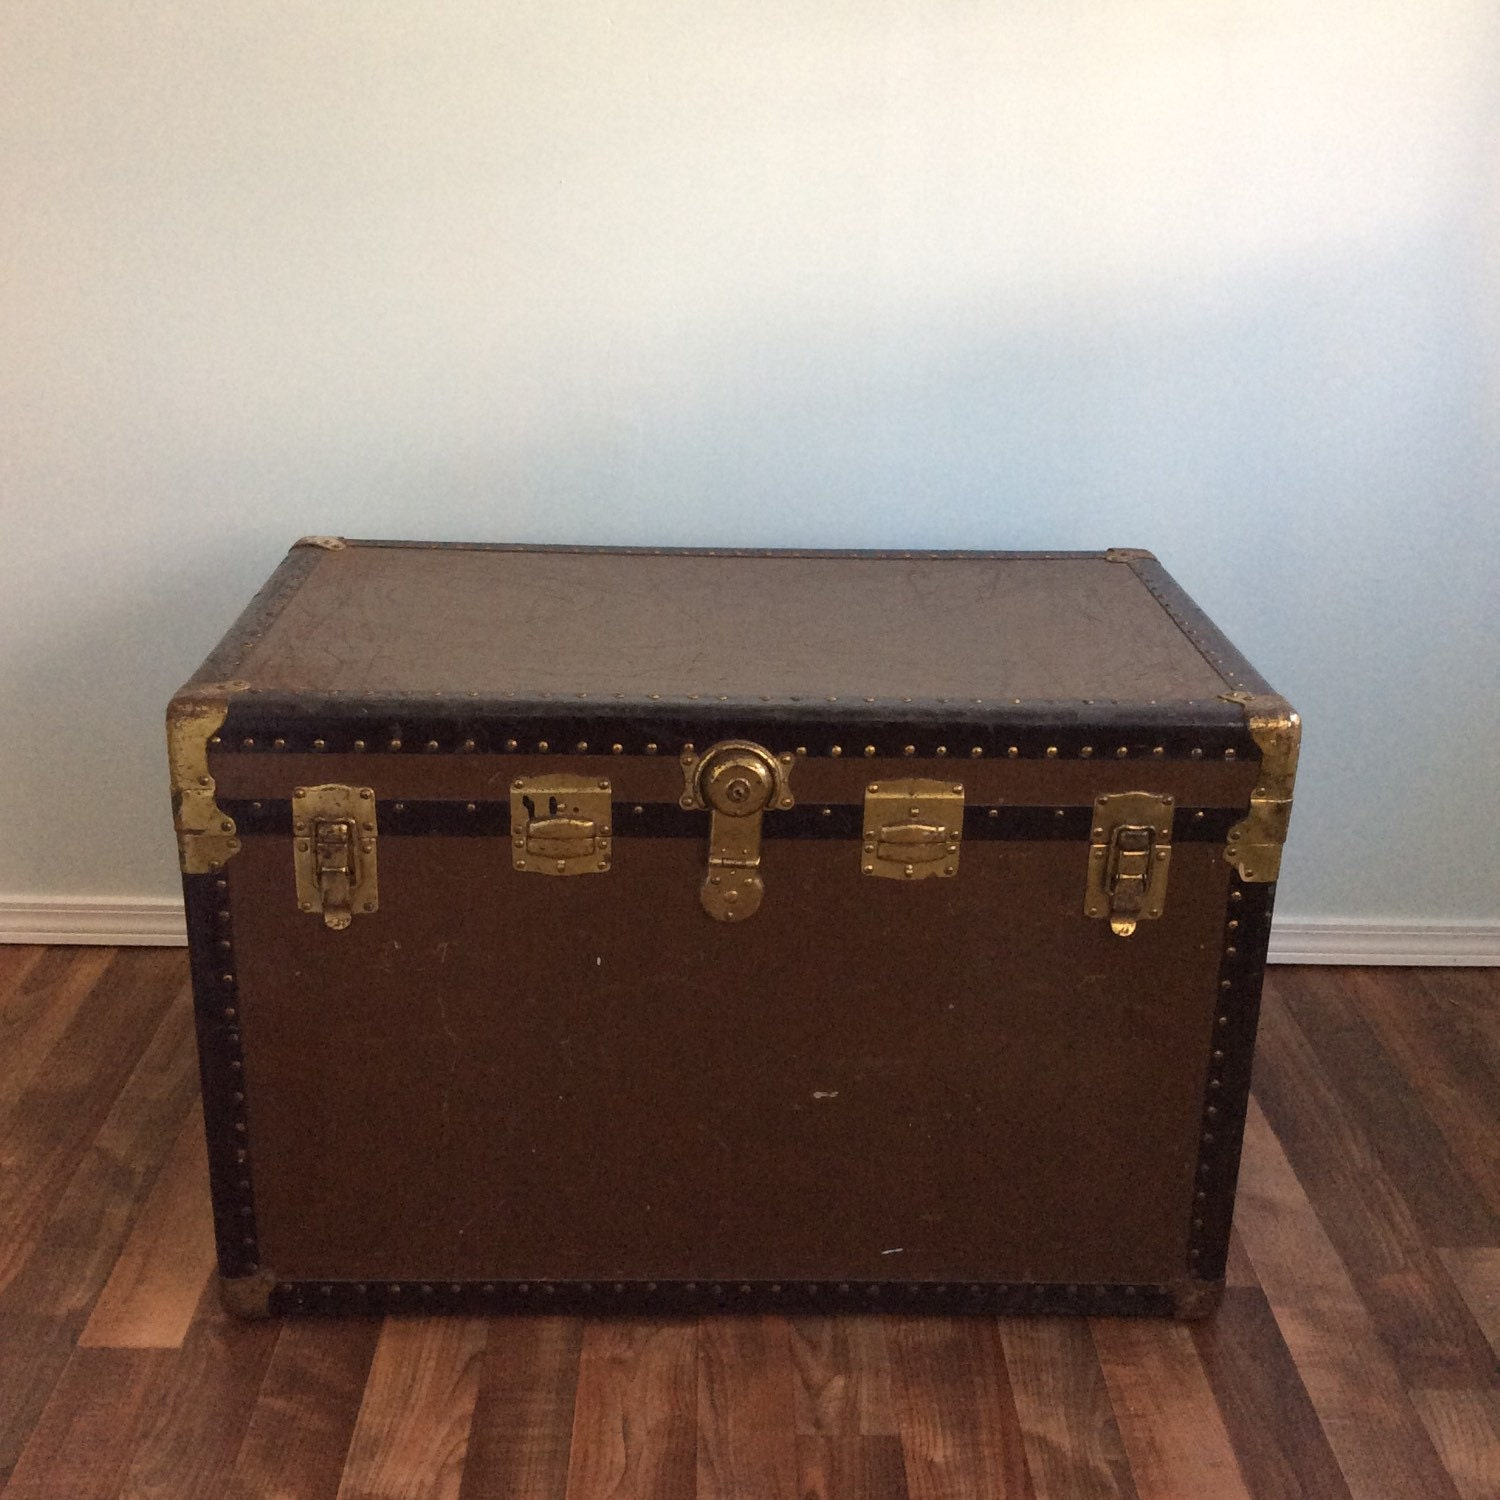 Vintage Trunk Large Coffee Table Size Steamer Chest Perfect As